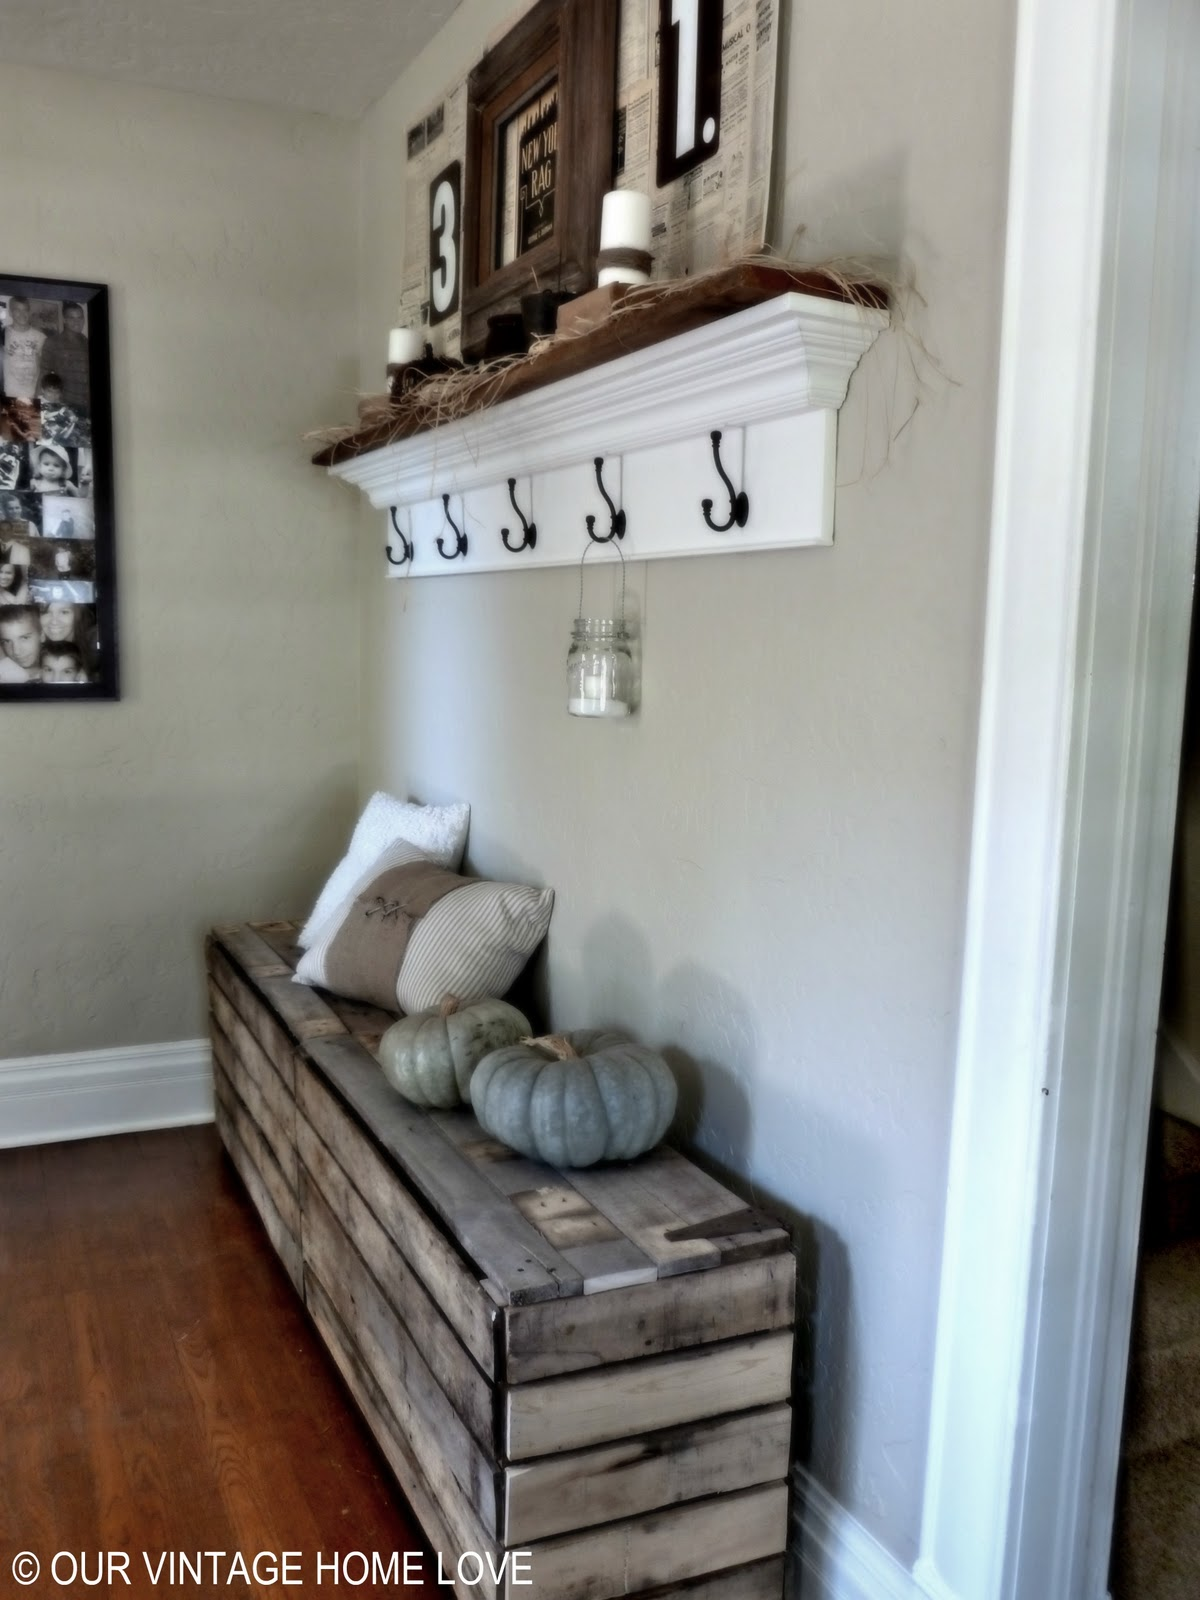 Rustic Hallway Wall Decor : Our vintage home love rustic pallet bench